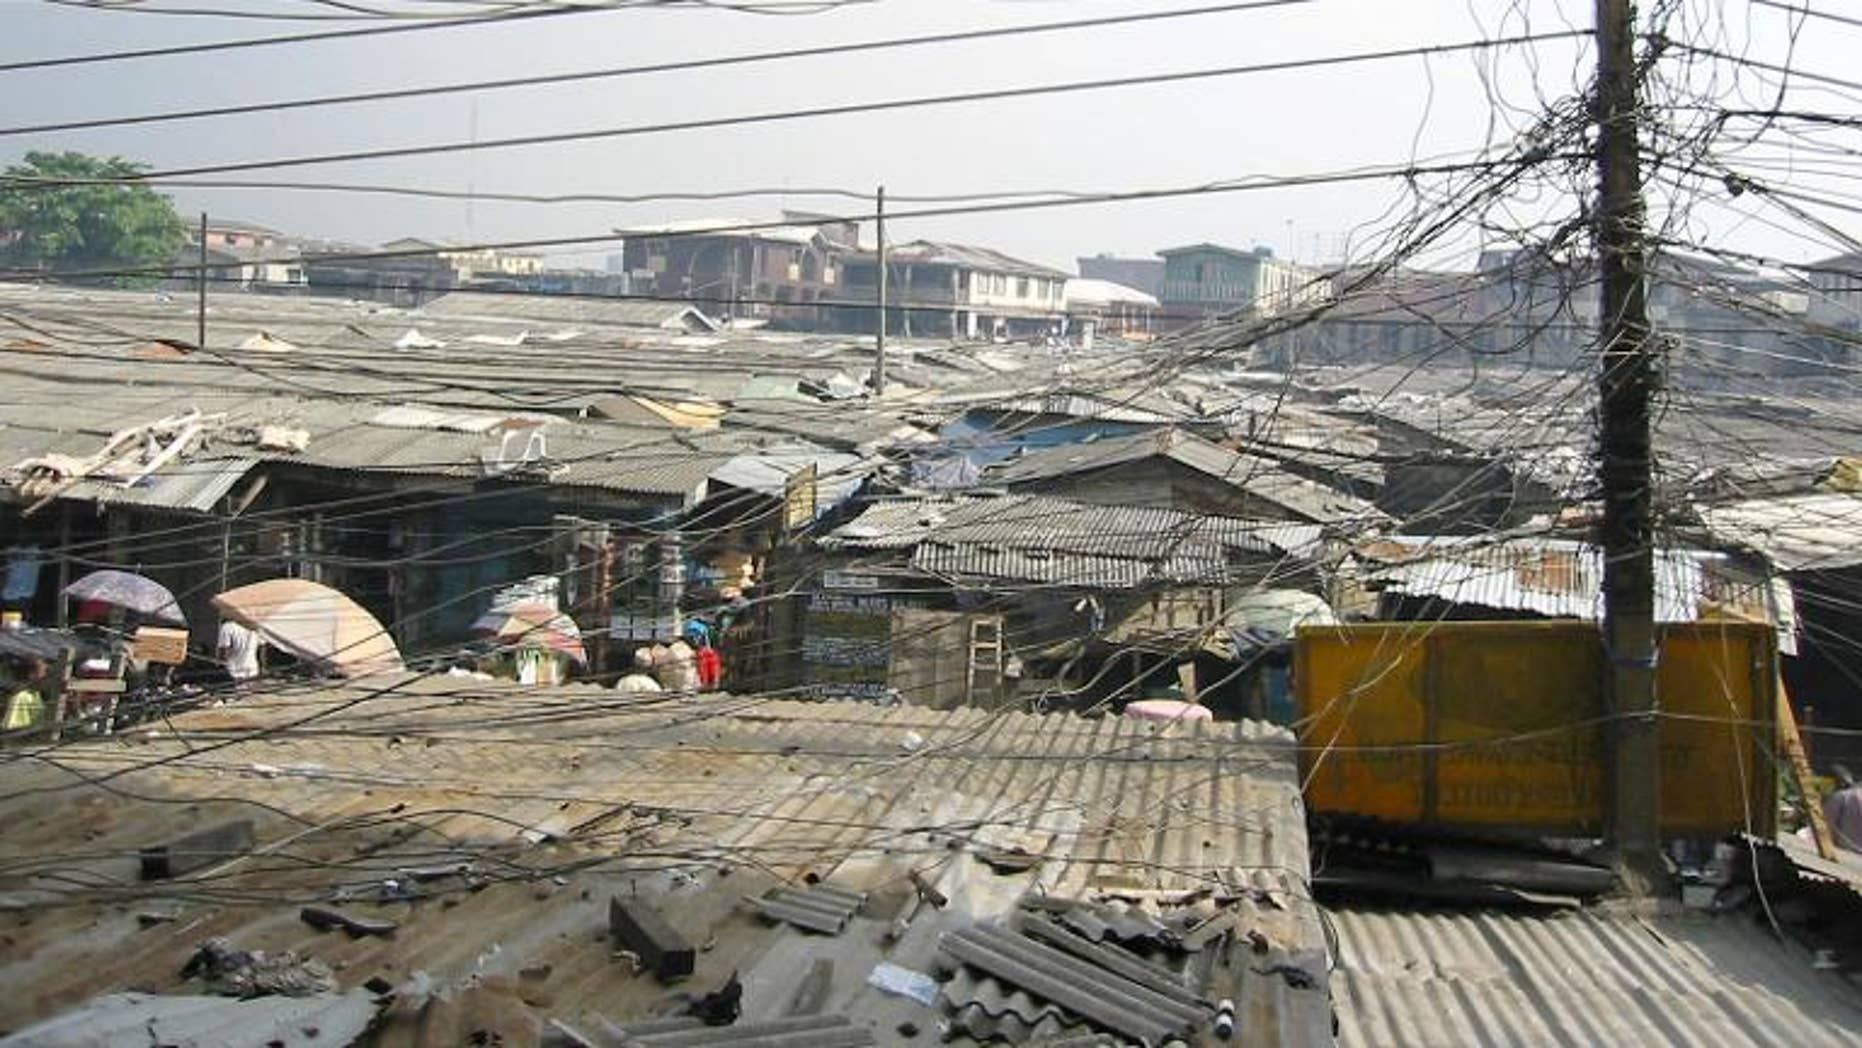 A scramble of power cables in Oshodi district of Lagos, Nigeria's largest city, on April, 16, 2003